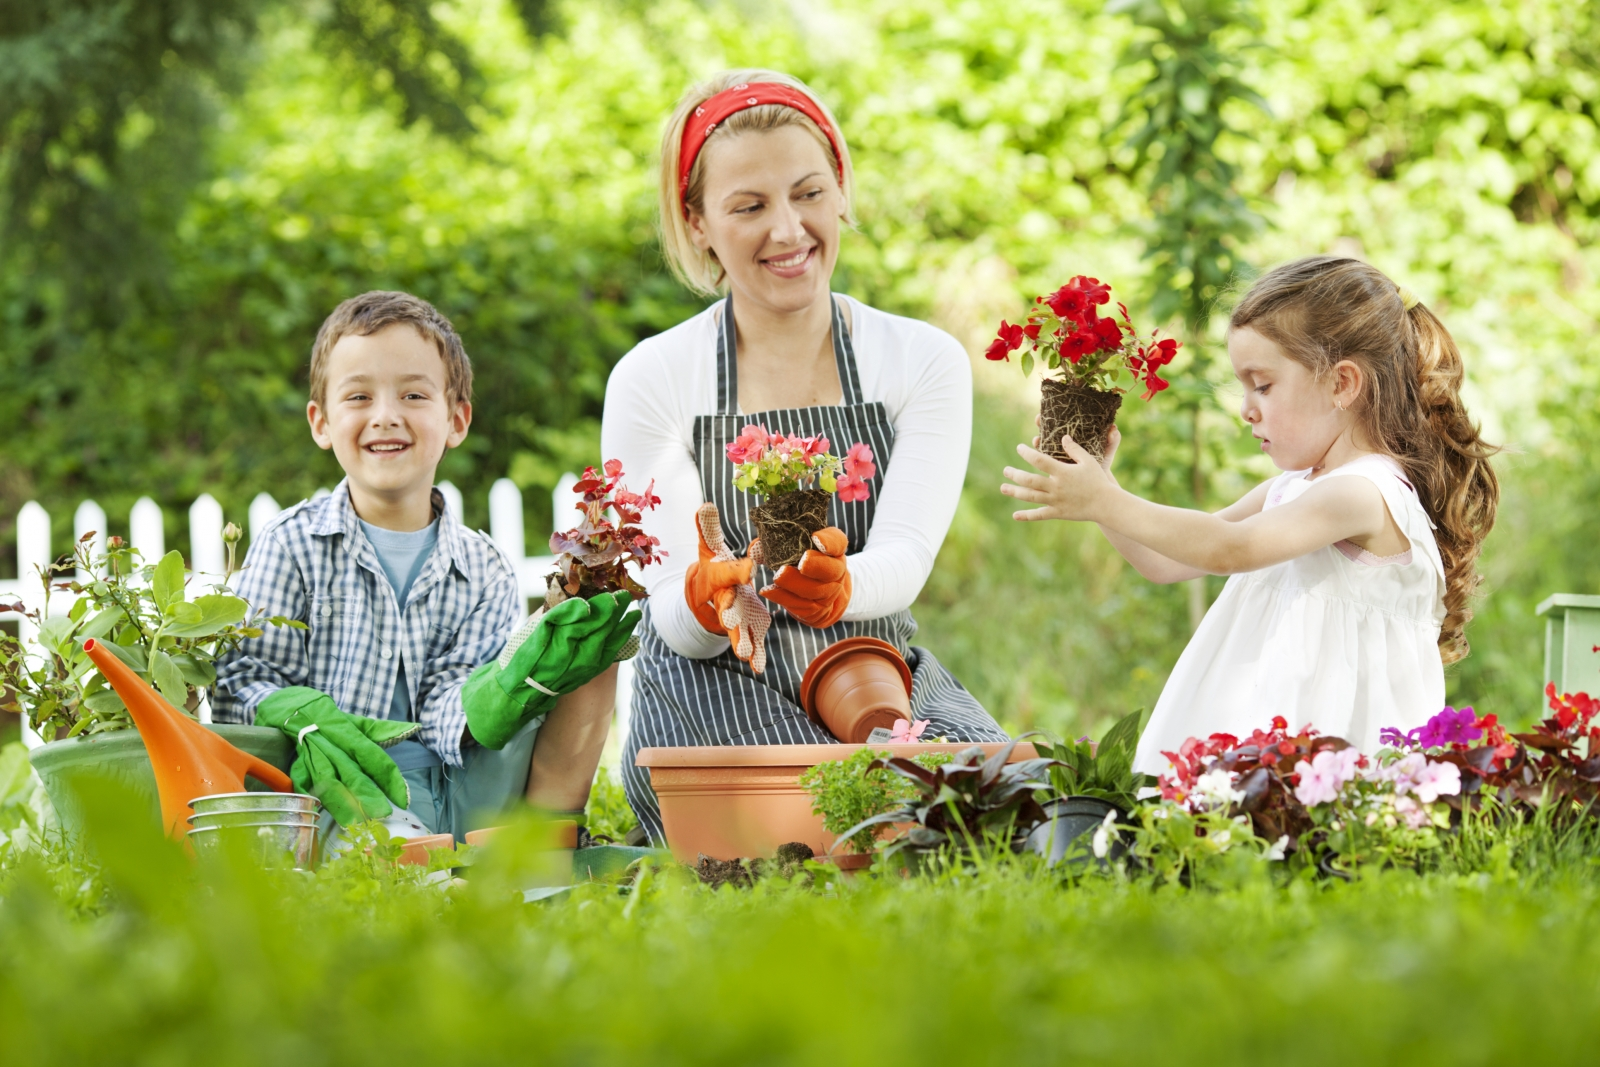 people gardening pictures - 849×565